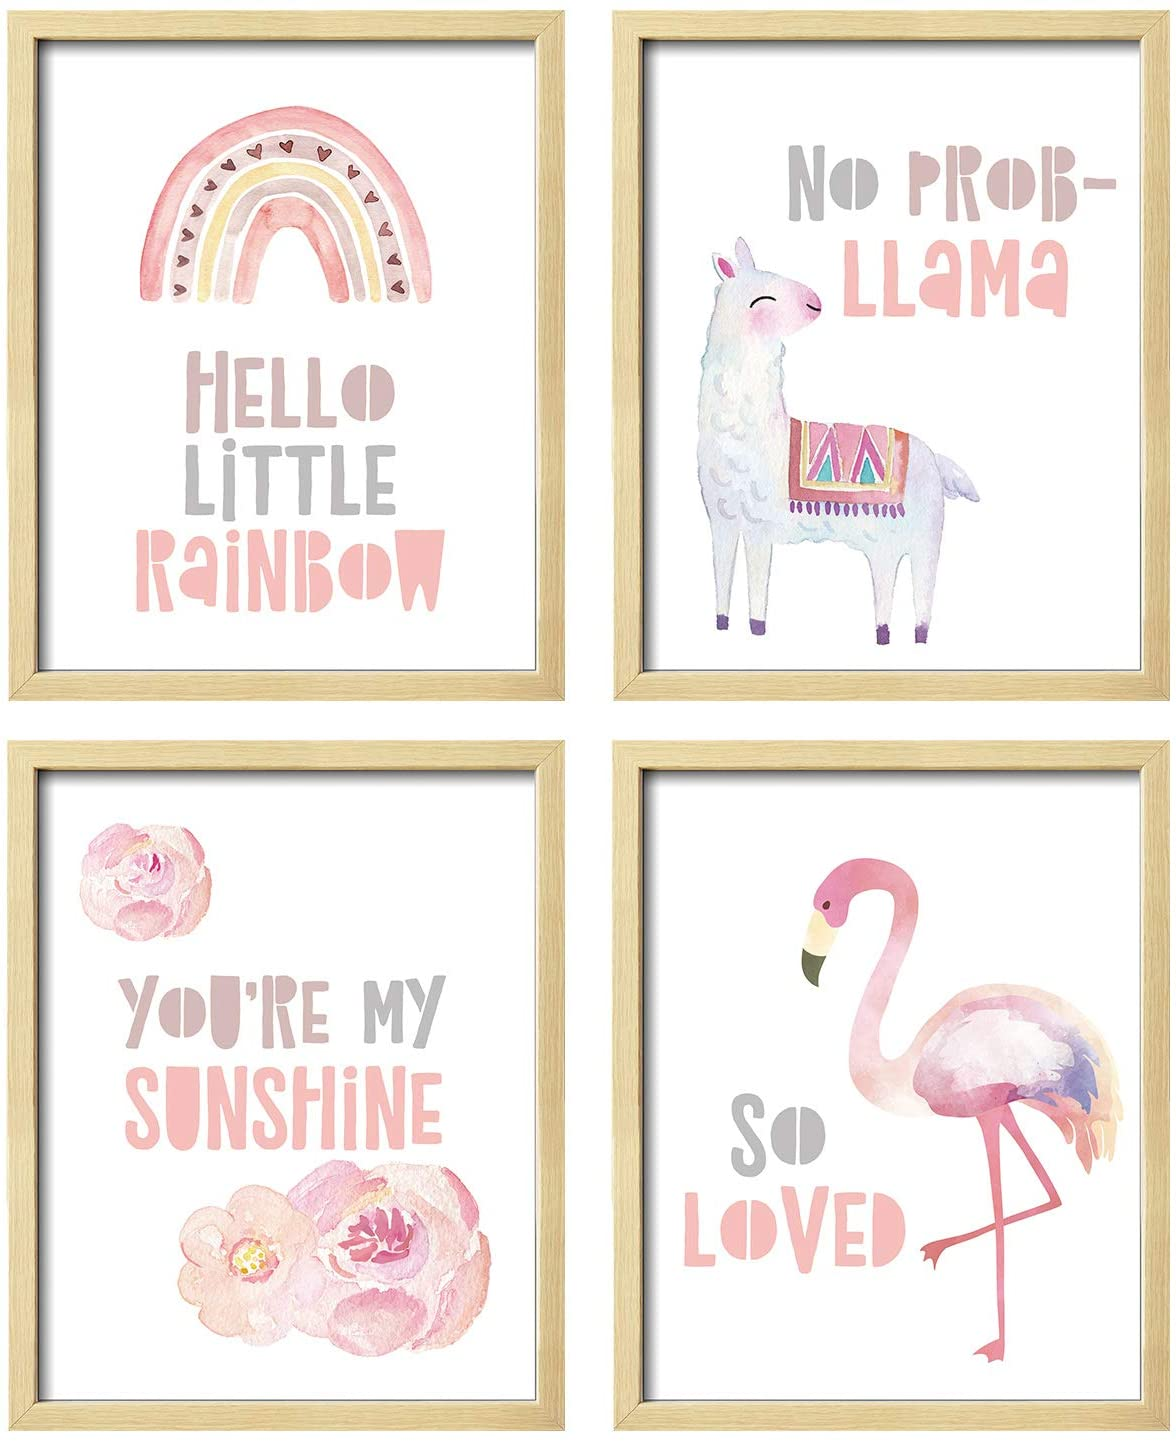 ArtbyHannah 4 Pack 8x10 Inch Unframed Rainbow Wall Art Print Artwork Poster Picture Print for Girls Bedroom or Living Room Nursery Decor or Home Decoration